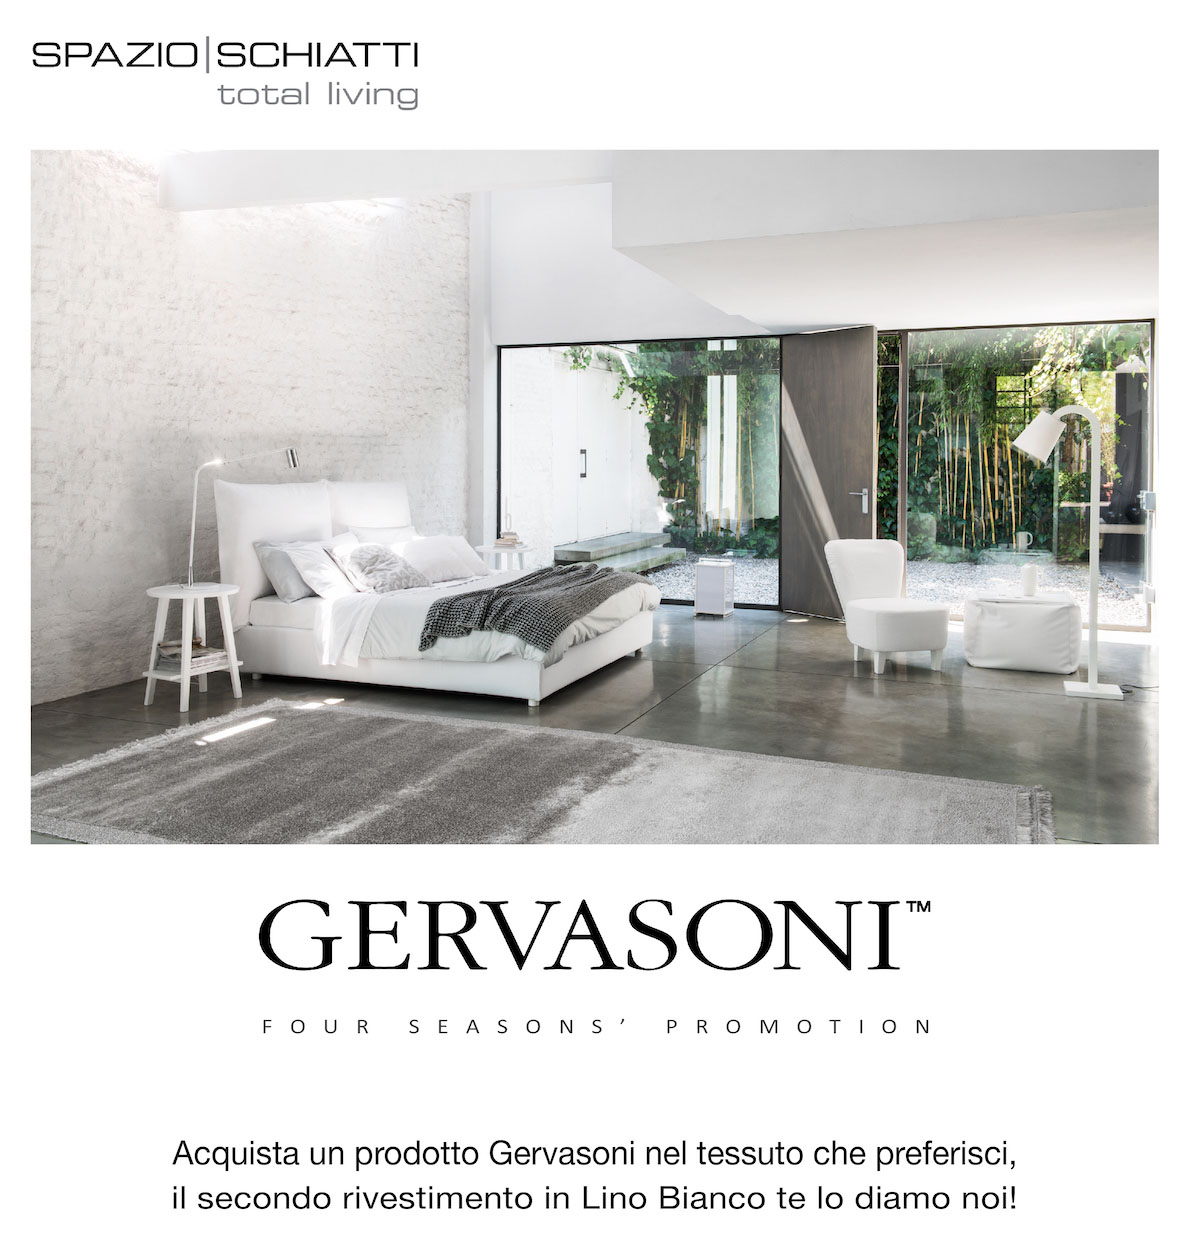 Spazio Schiatti - Gervasoni Four Seasons' Promotion